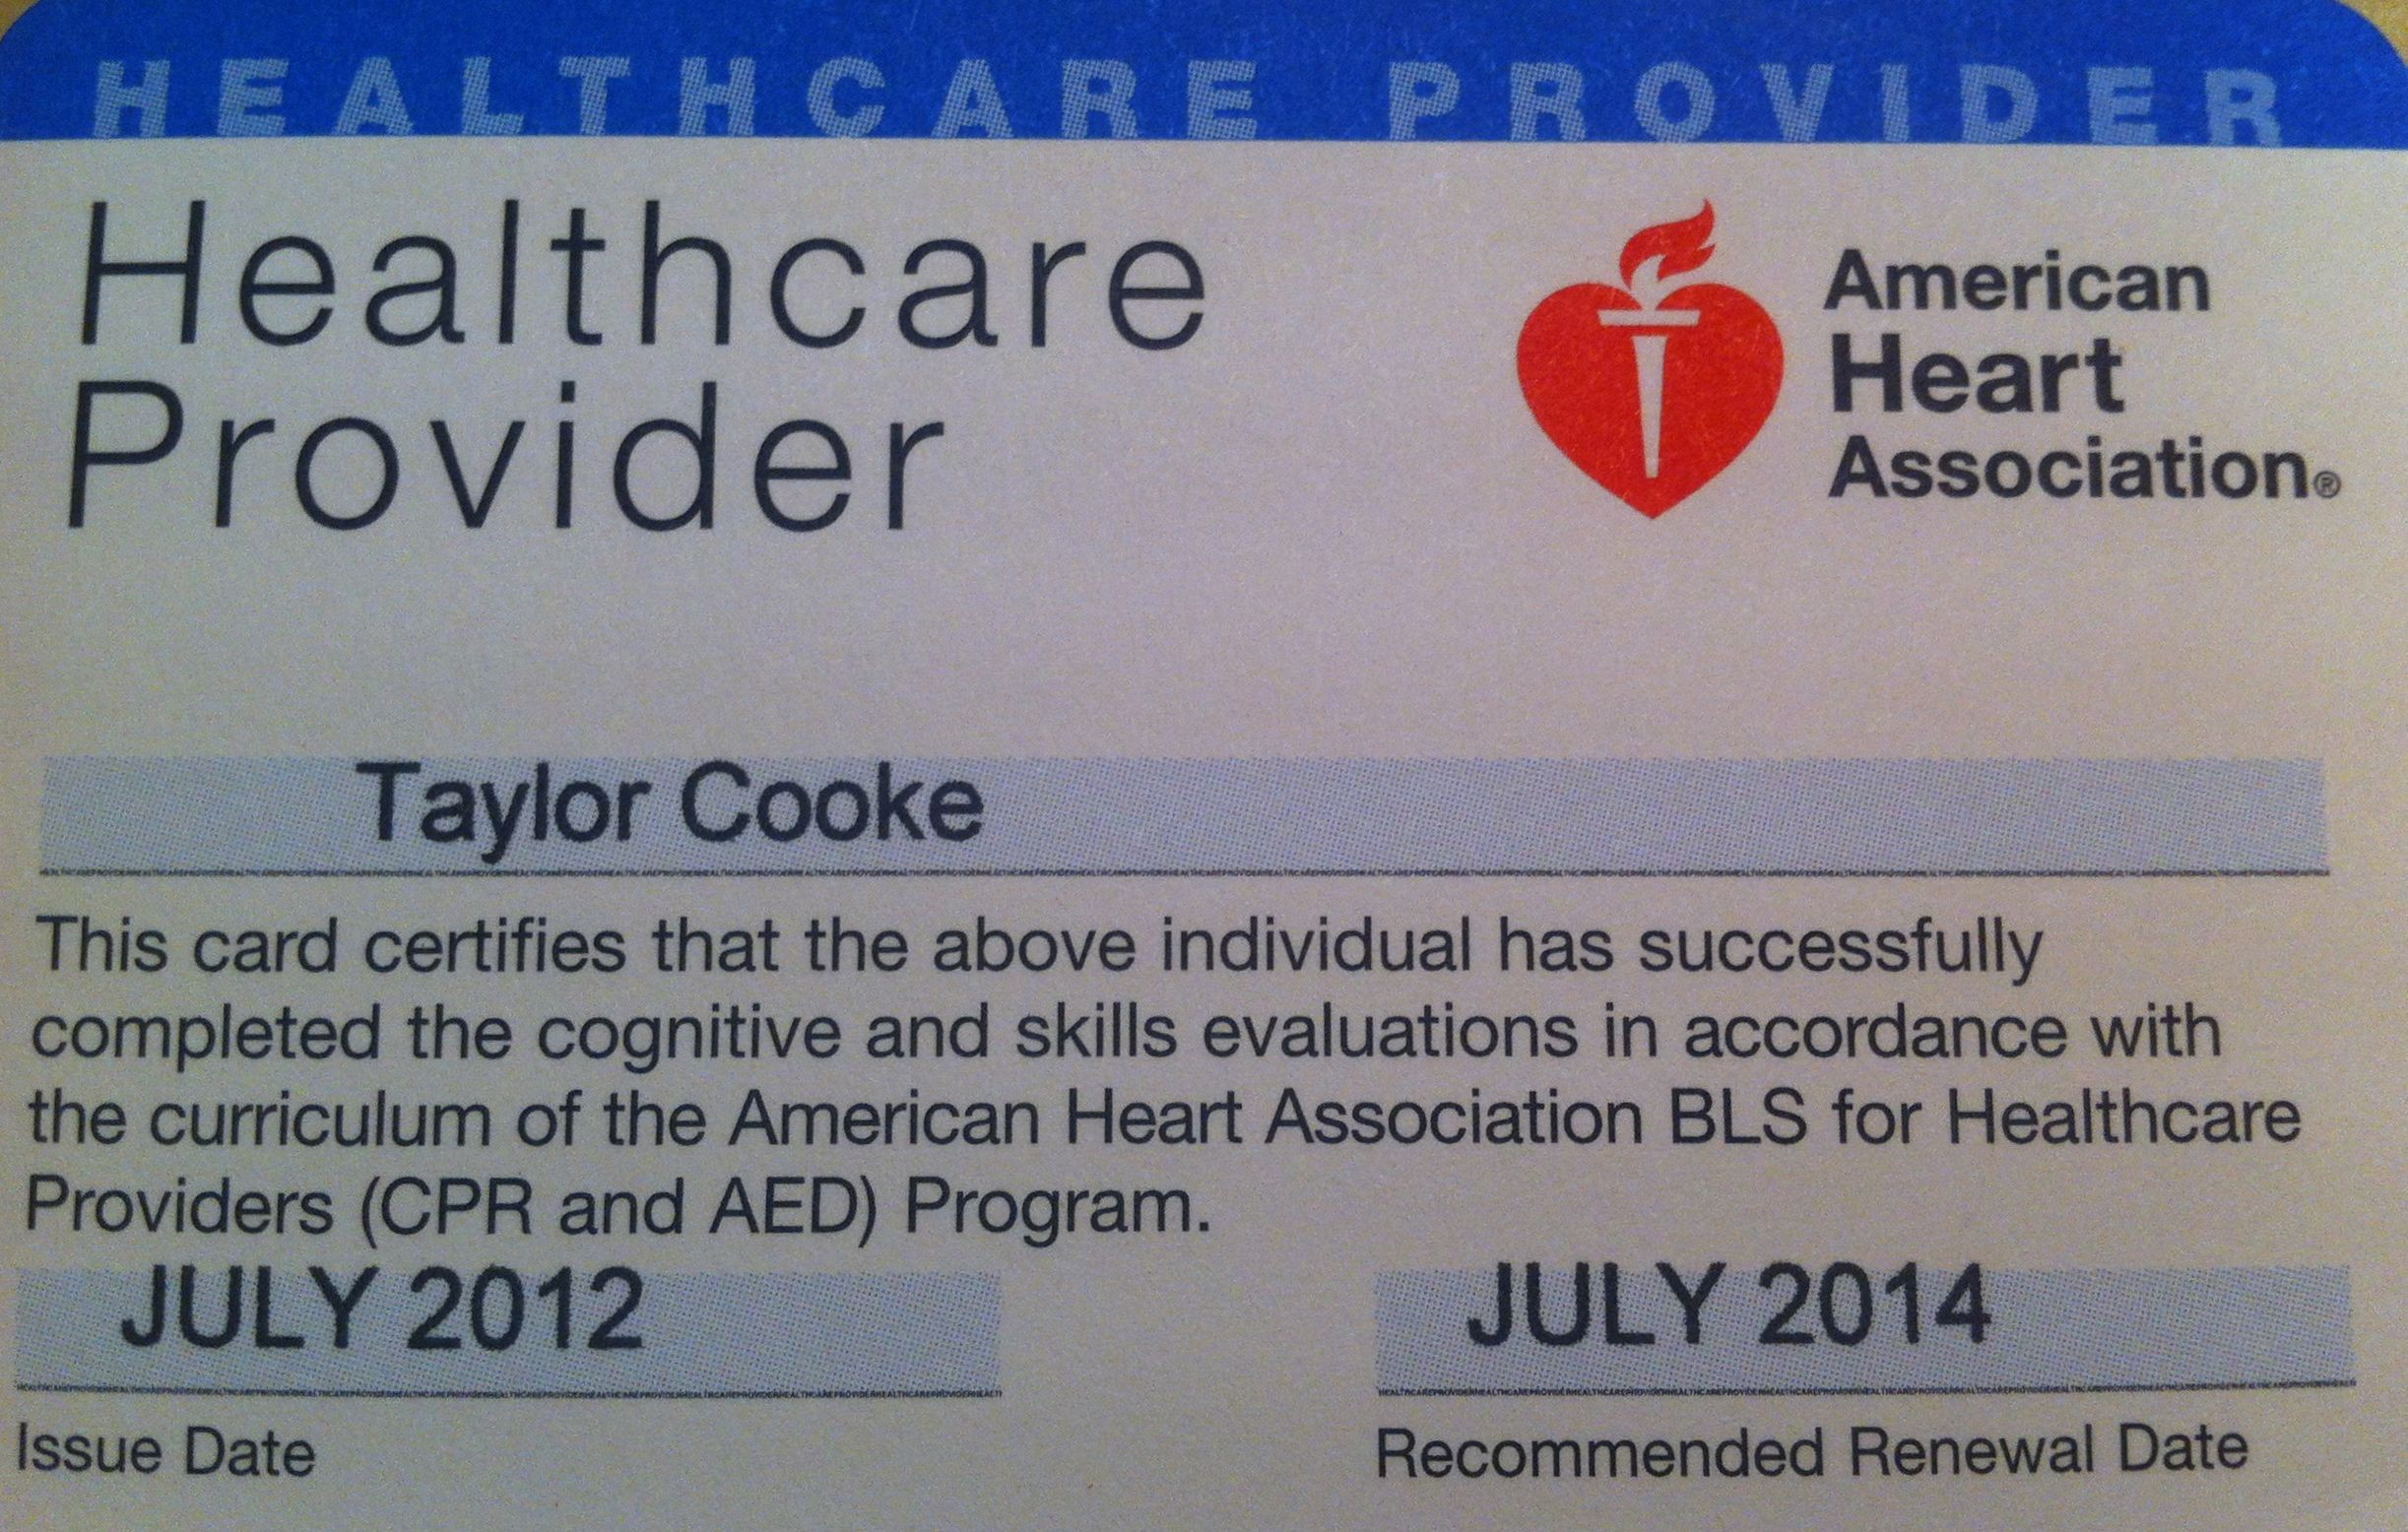 American Heart Association Bls For Healthcare Providers Cpr And Aed